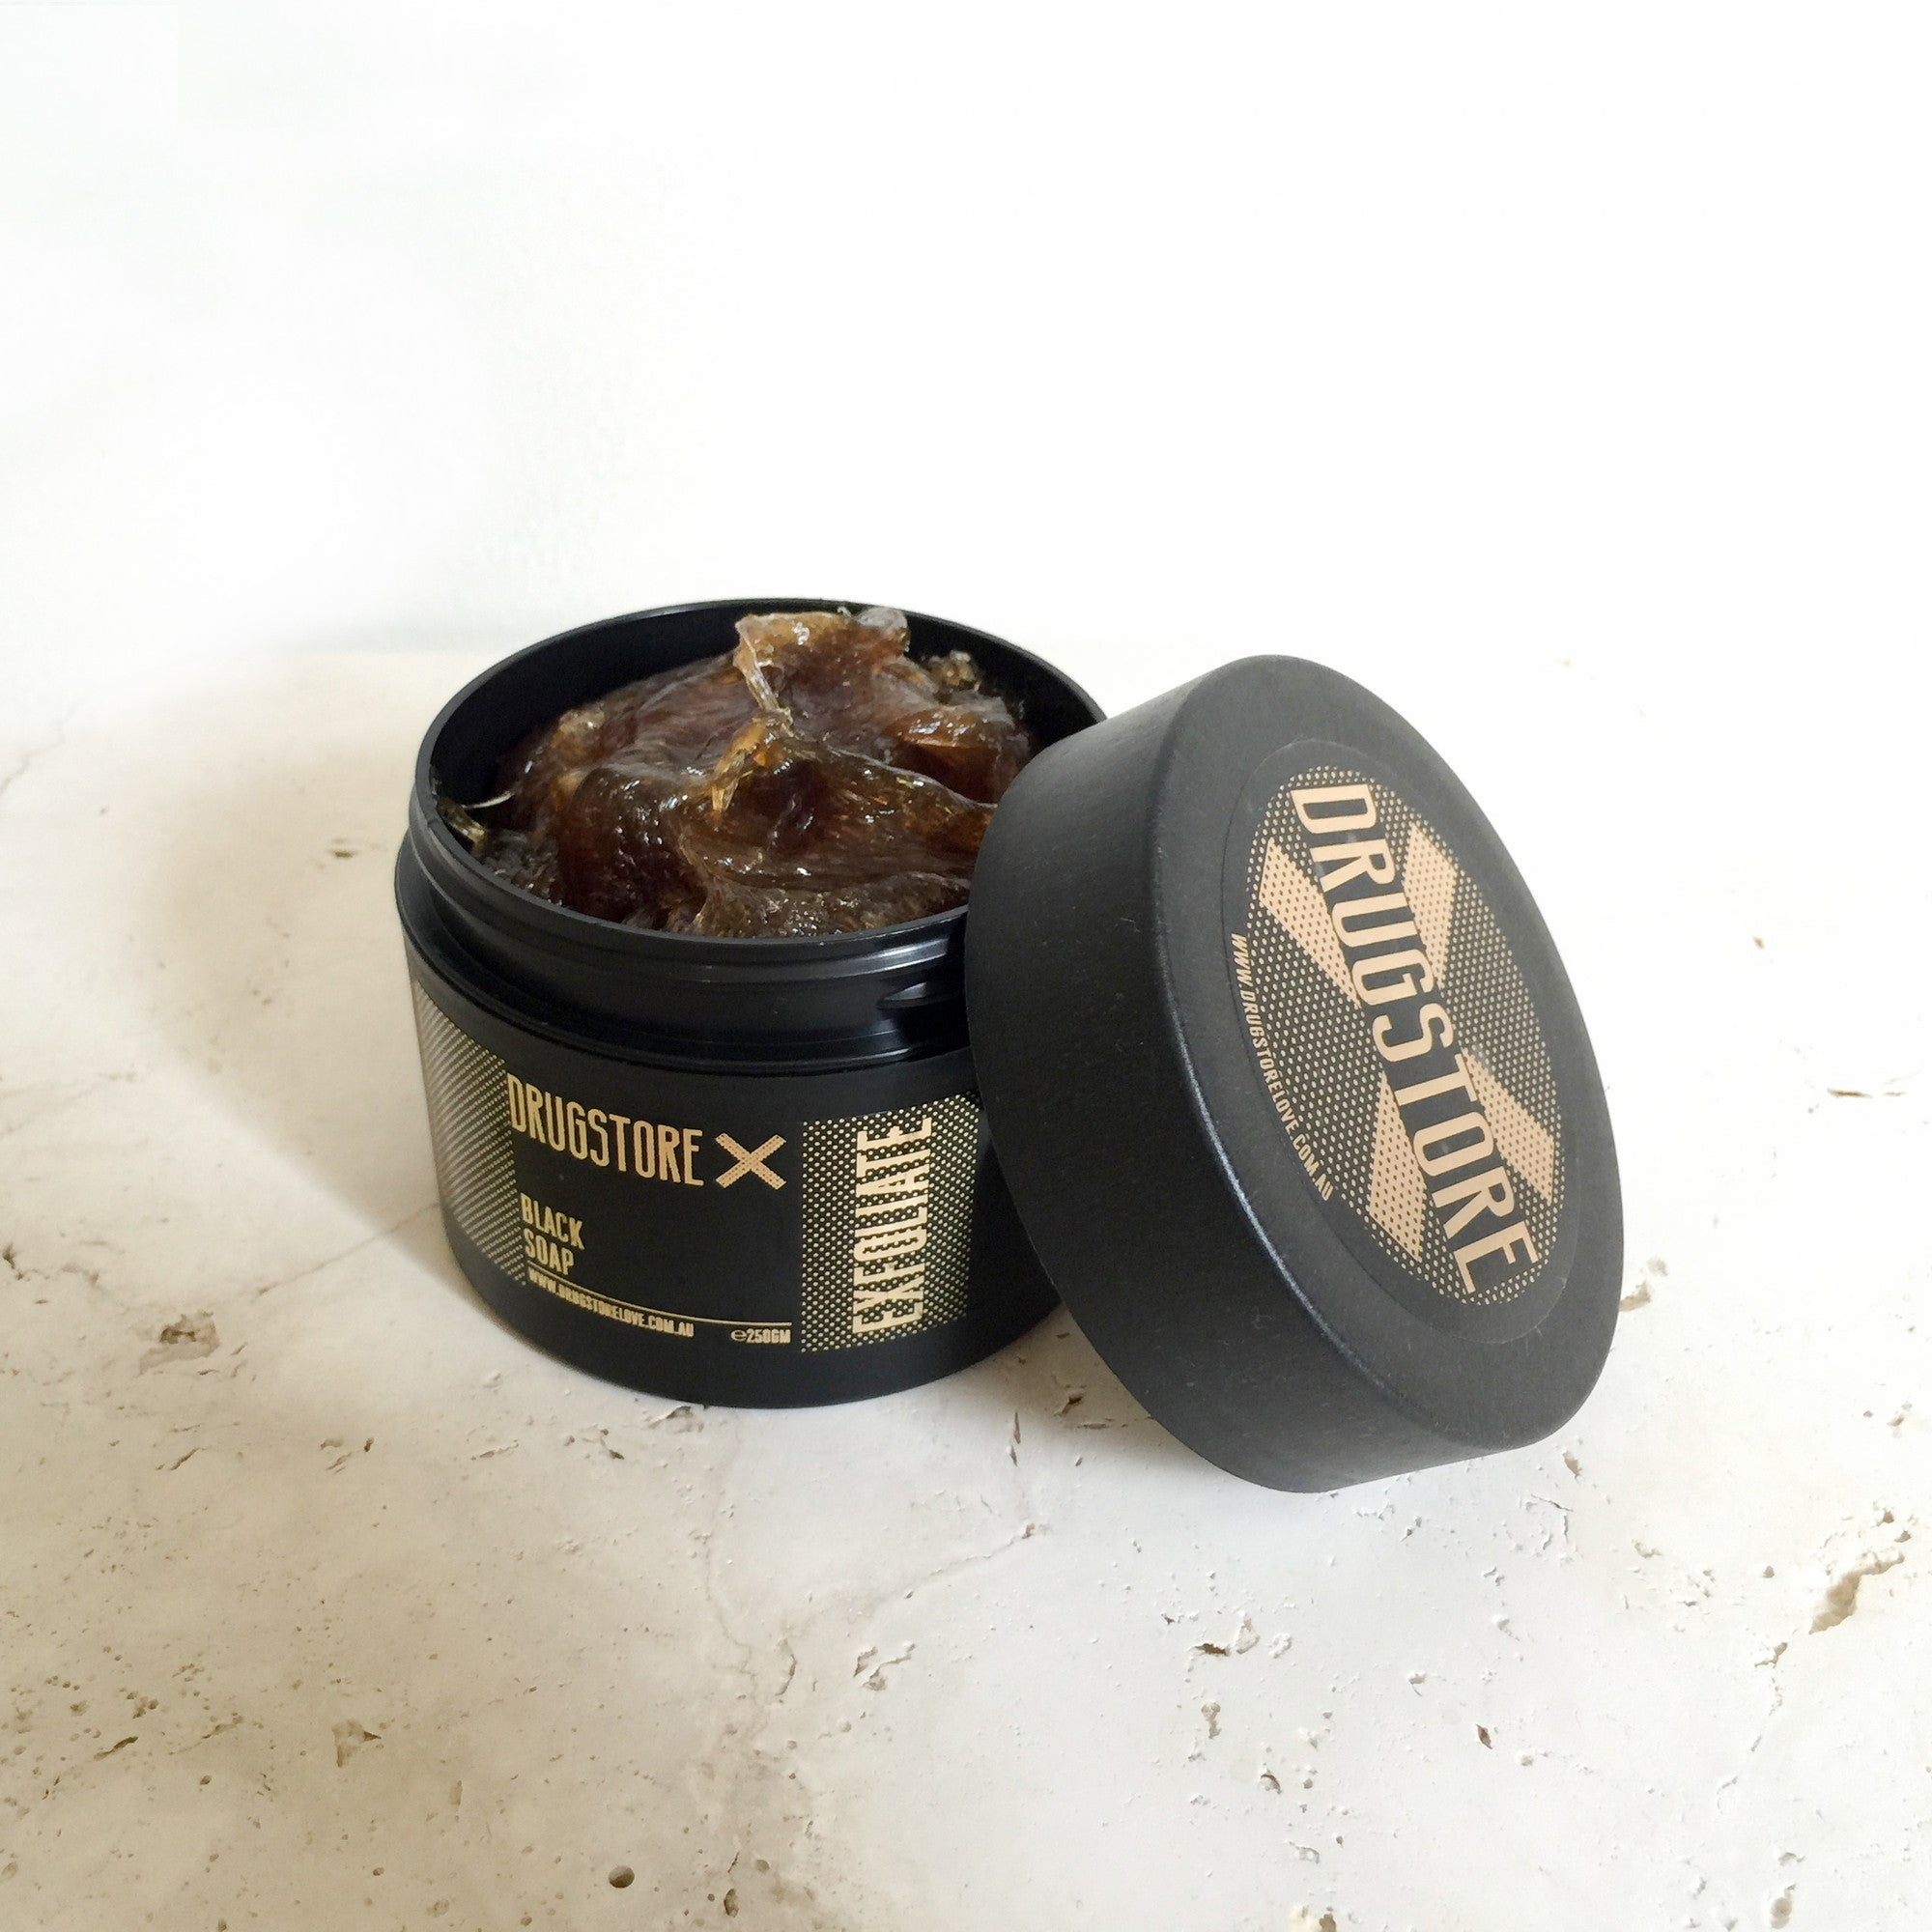 Drugstore Black Soap